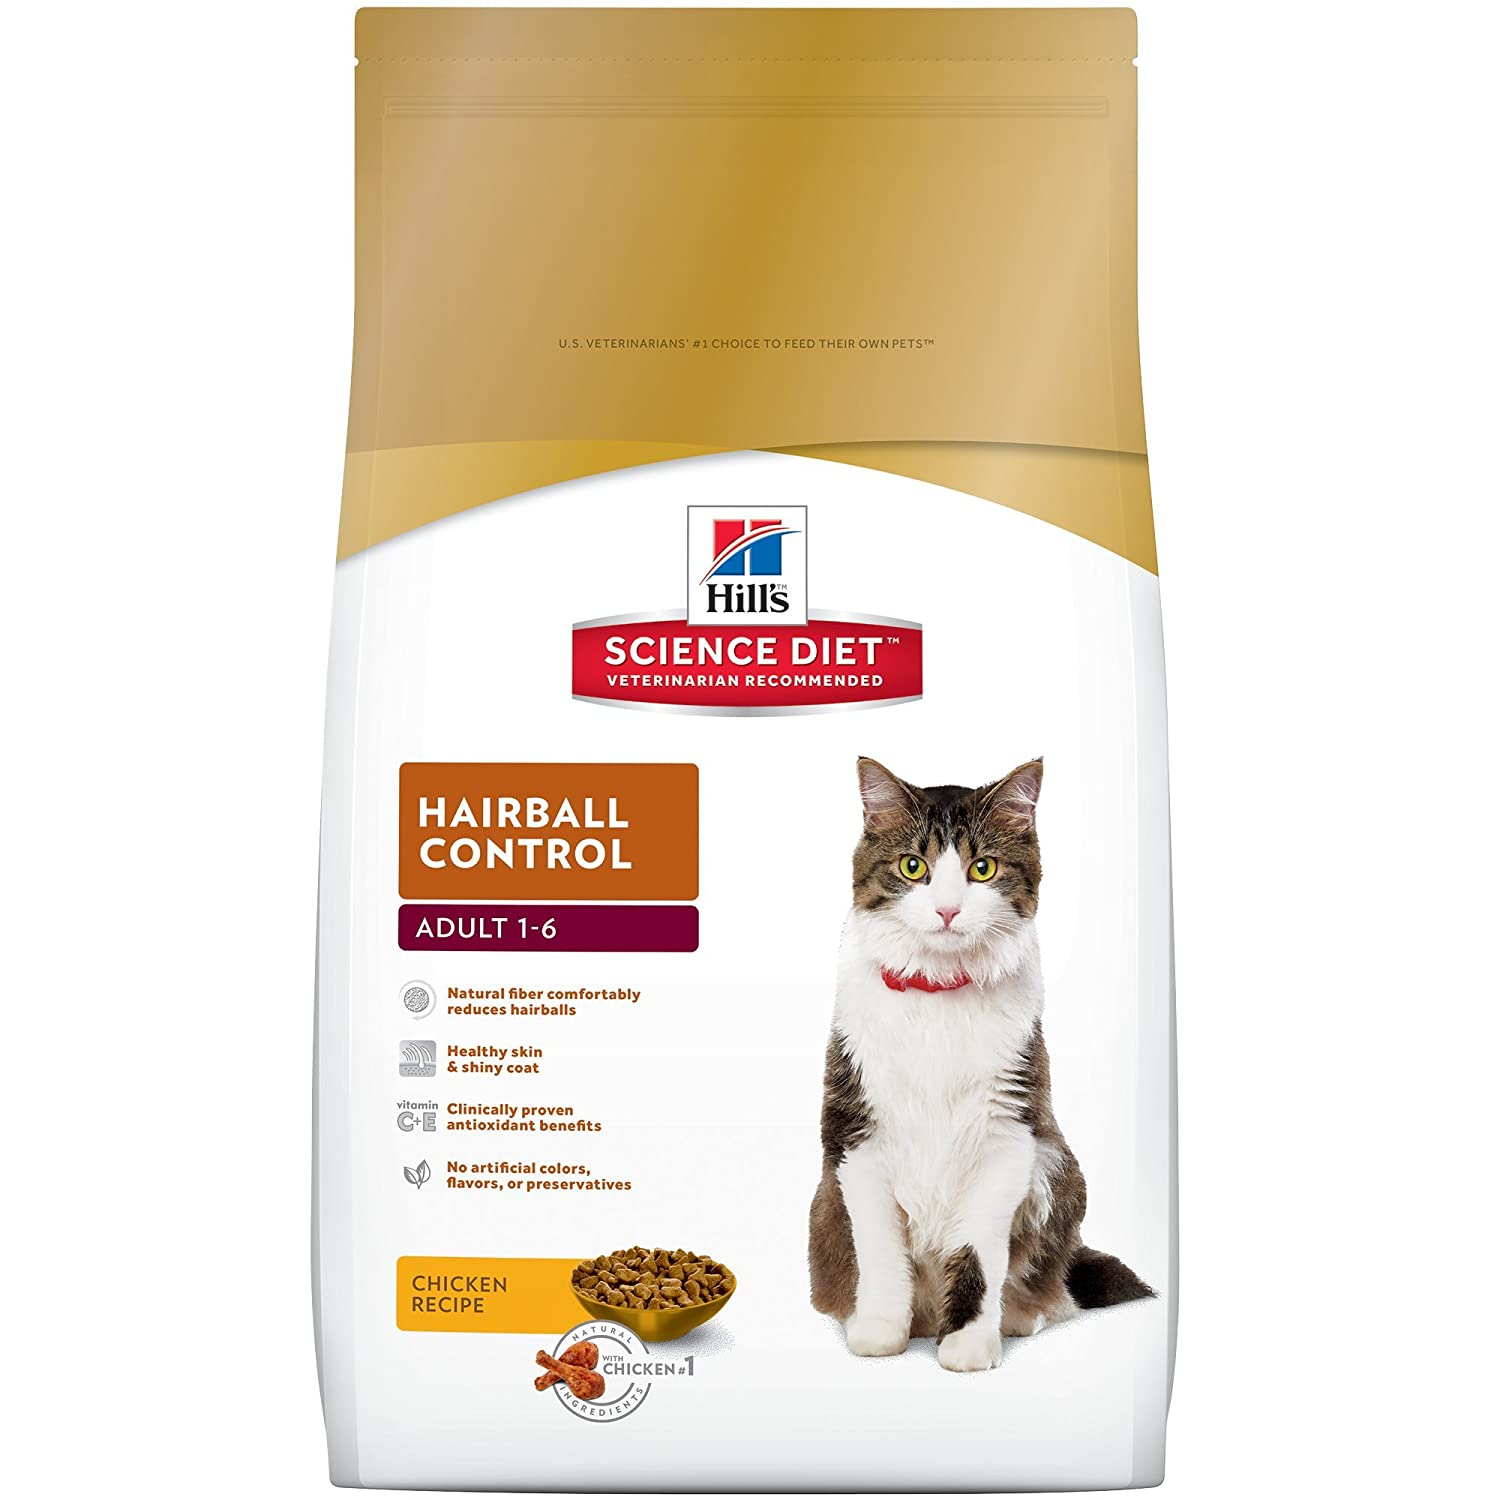 Hill's Science Diet Hairball Control Dry